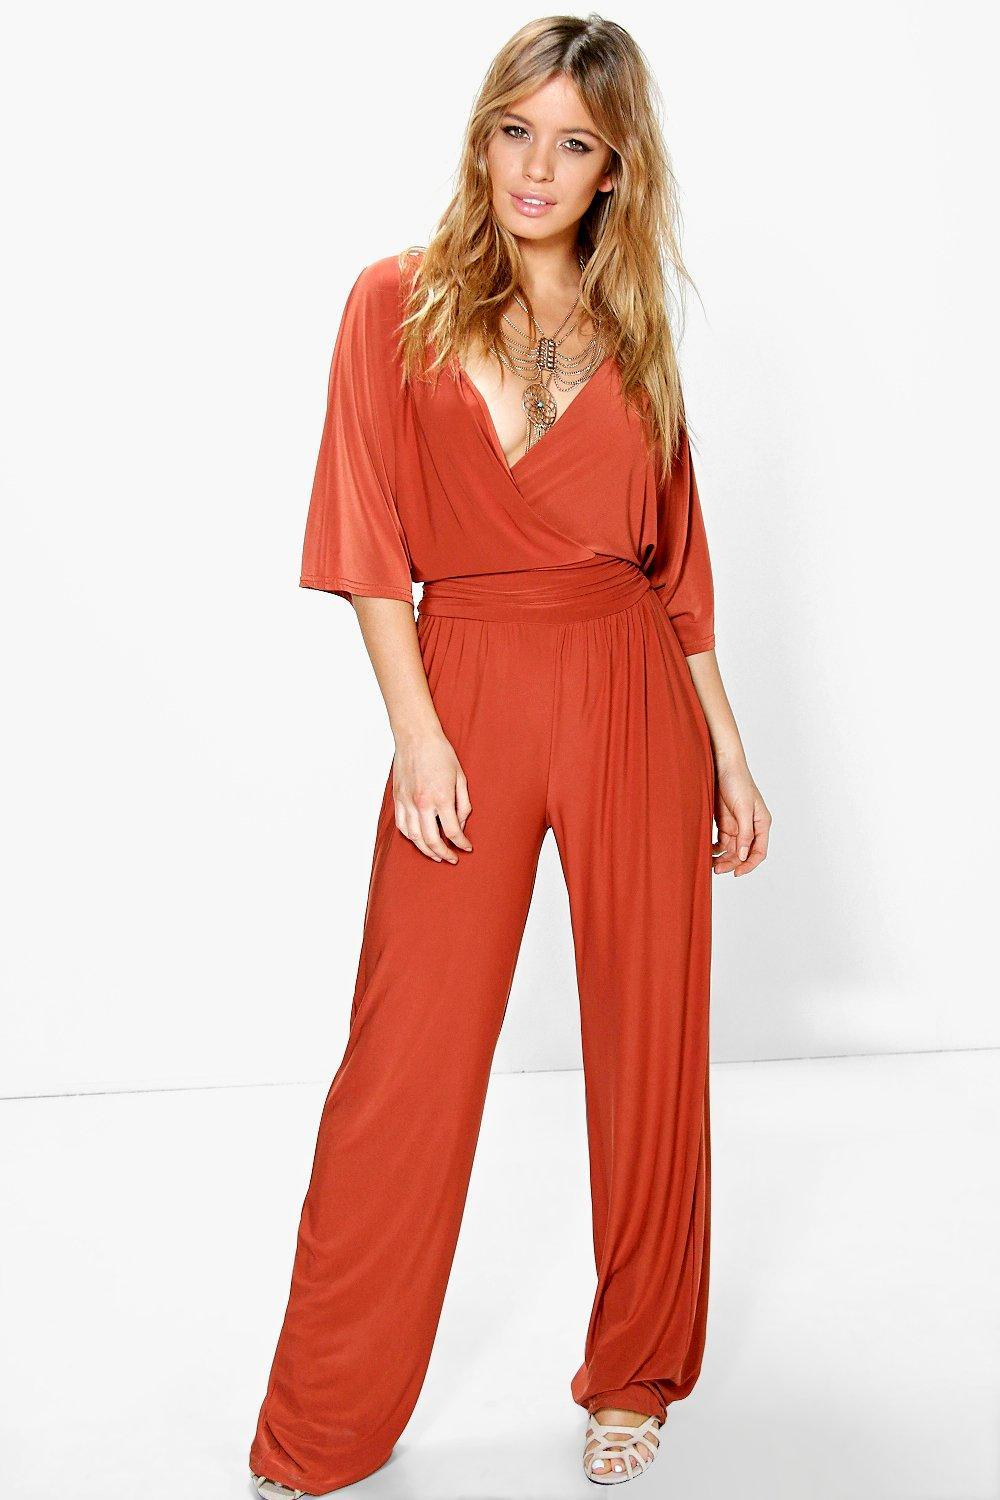 Elle Wrap Front Wide Leg Jumpsuit Spice - length: standard; neckline: low v-neck; pattern: plain; predominant colour: bright orange; occasions: evening; fit: body skimming; fibres: polyester/polyamide - stretch; sleeve length: half sleeve; sleeve style: standard; style: jumpsuit; pattern type: fabric; texture group: jersey - stretchy/drapey; season: s/s 2016; wardrobe: event